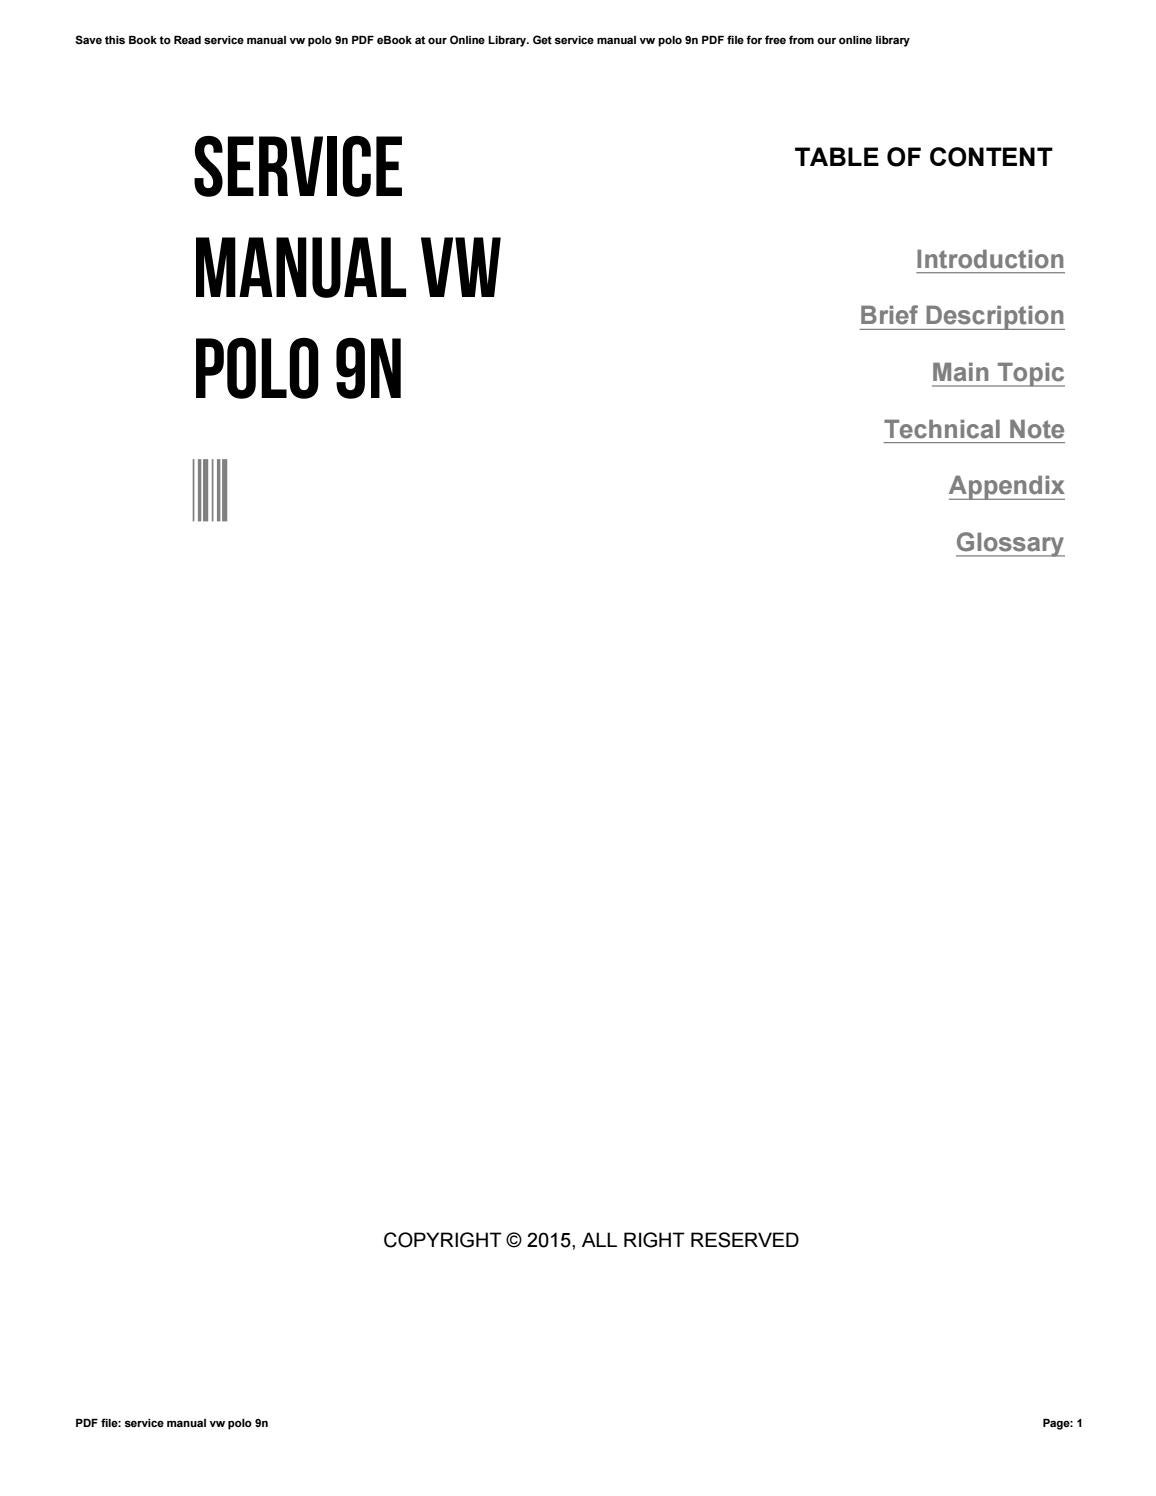 Service Manual Vw Polo 9n By Richardhill2285